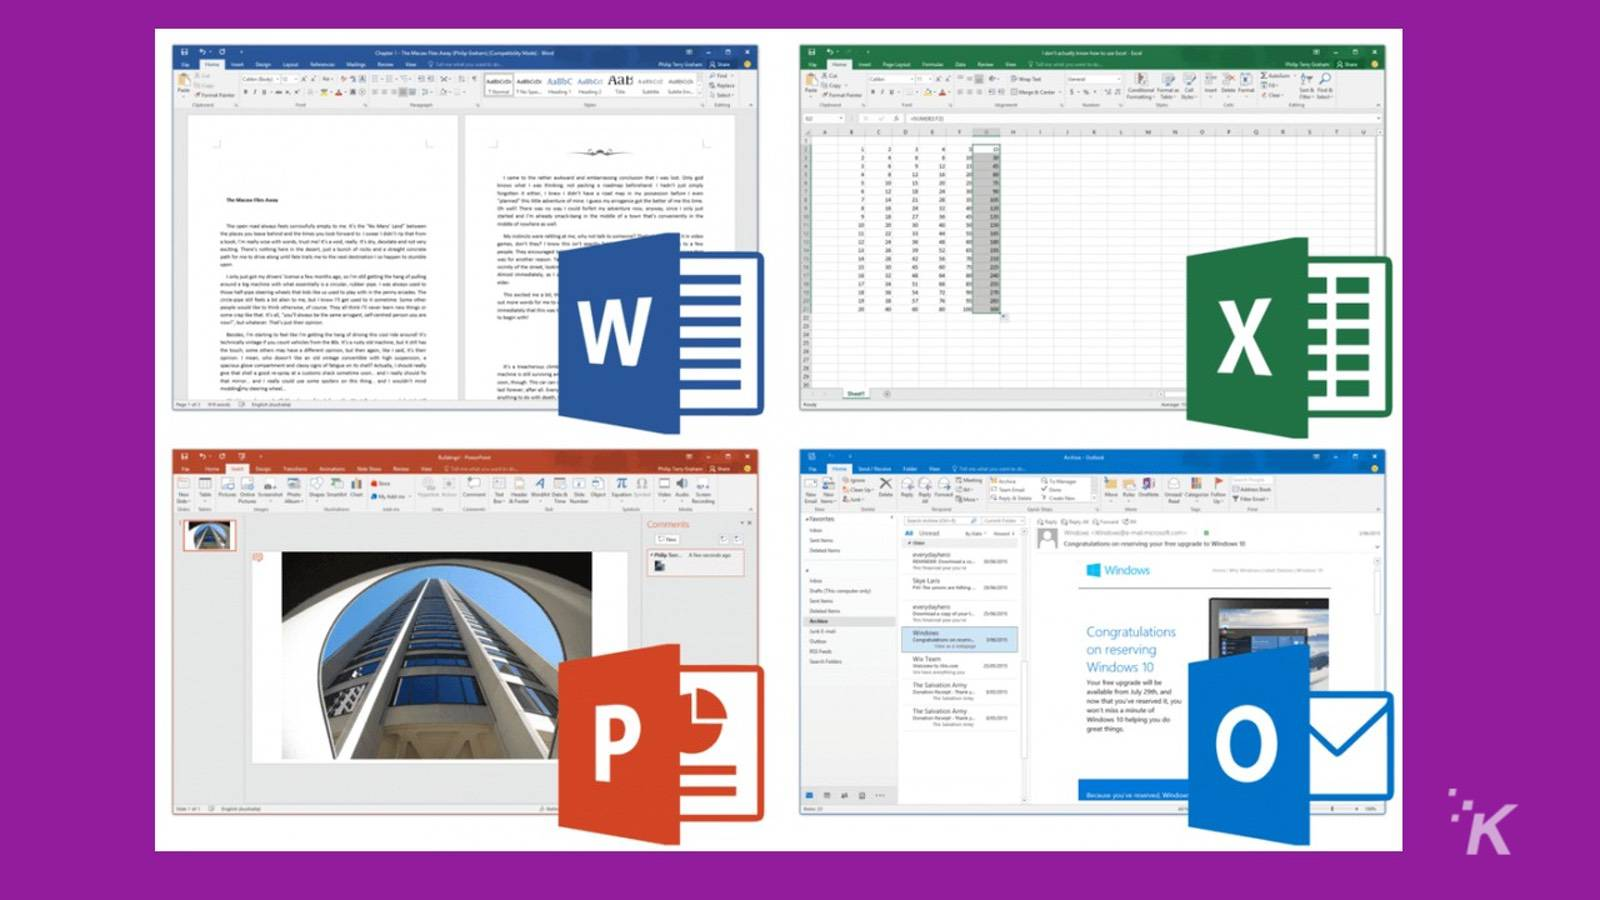 Reasons for upgrading to Microsoft Office 2016 - KnowTechie